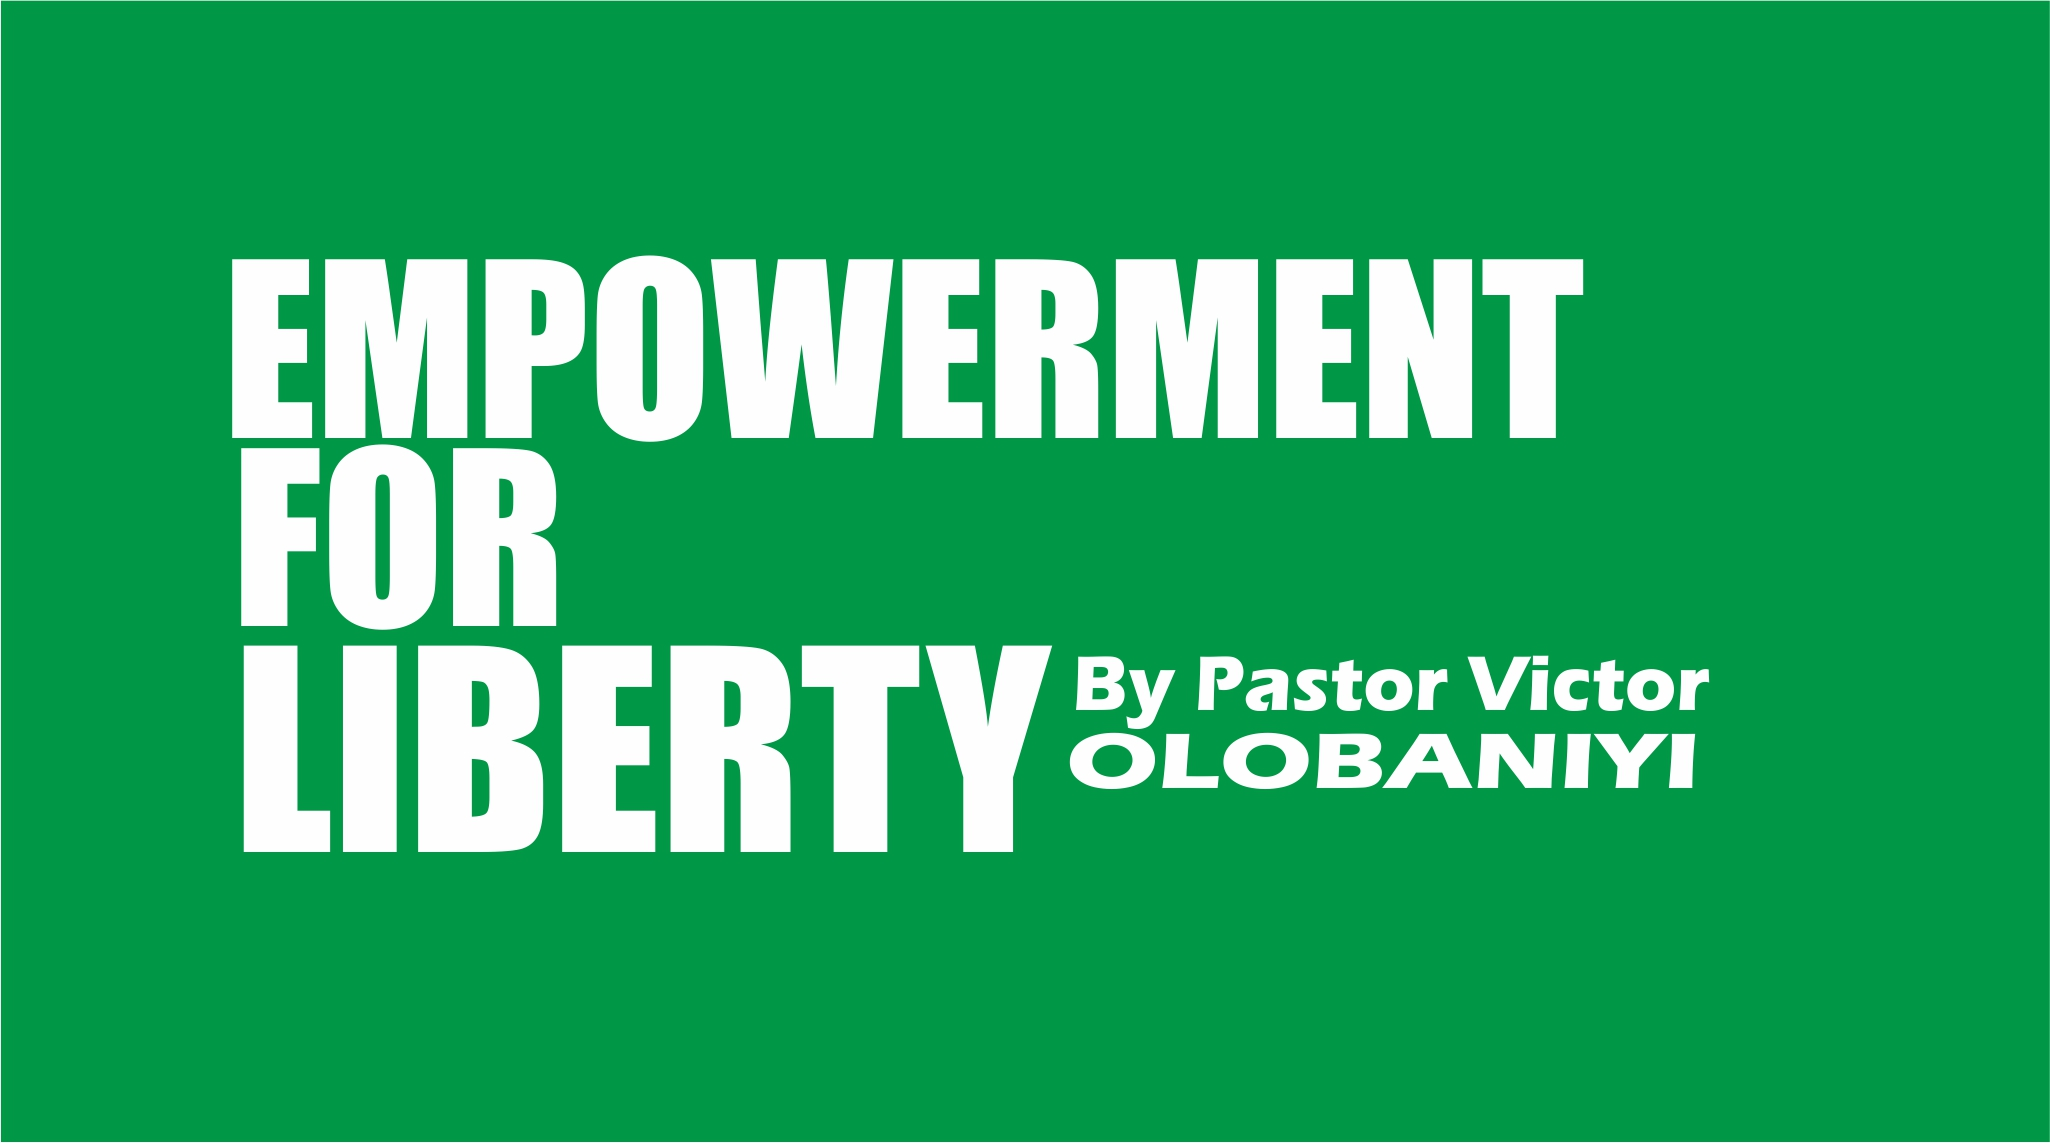 Empowerment For Liberty, by Pastor Victor Olobaniyi